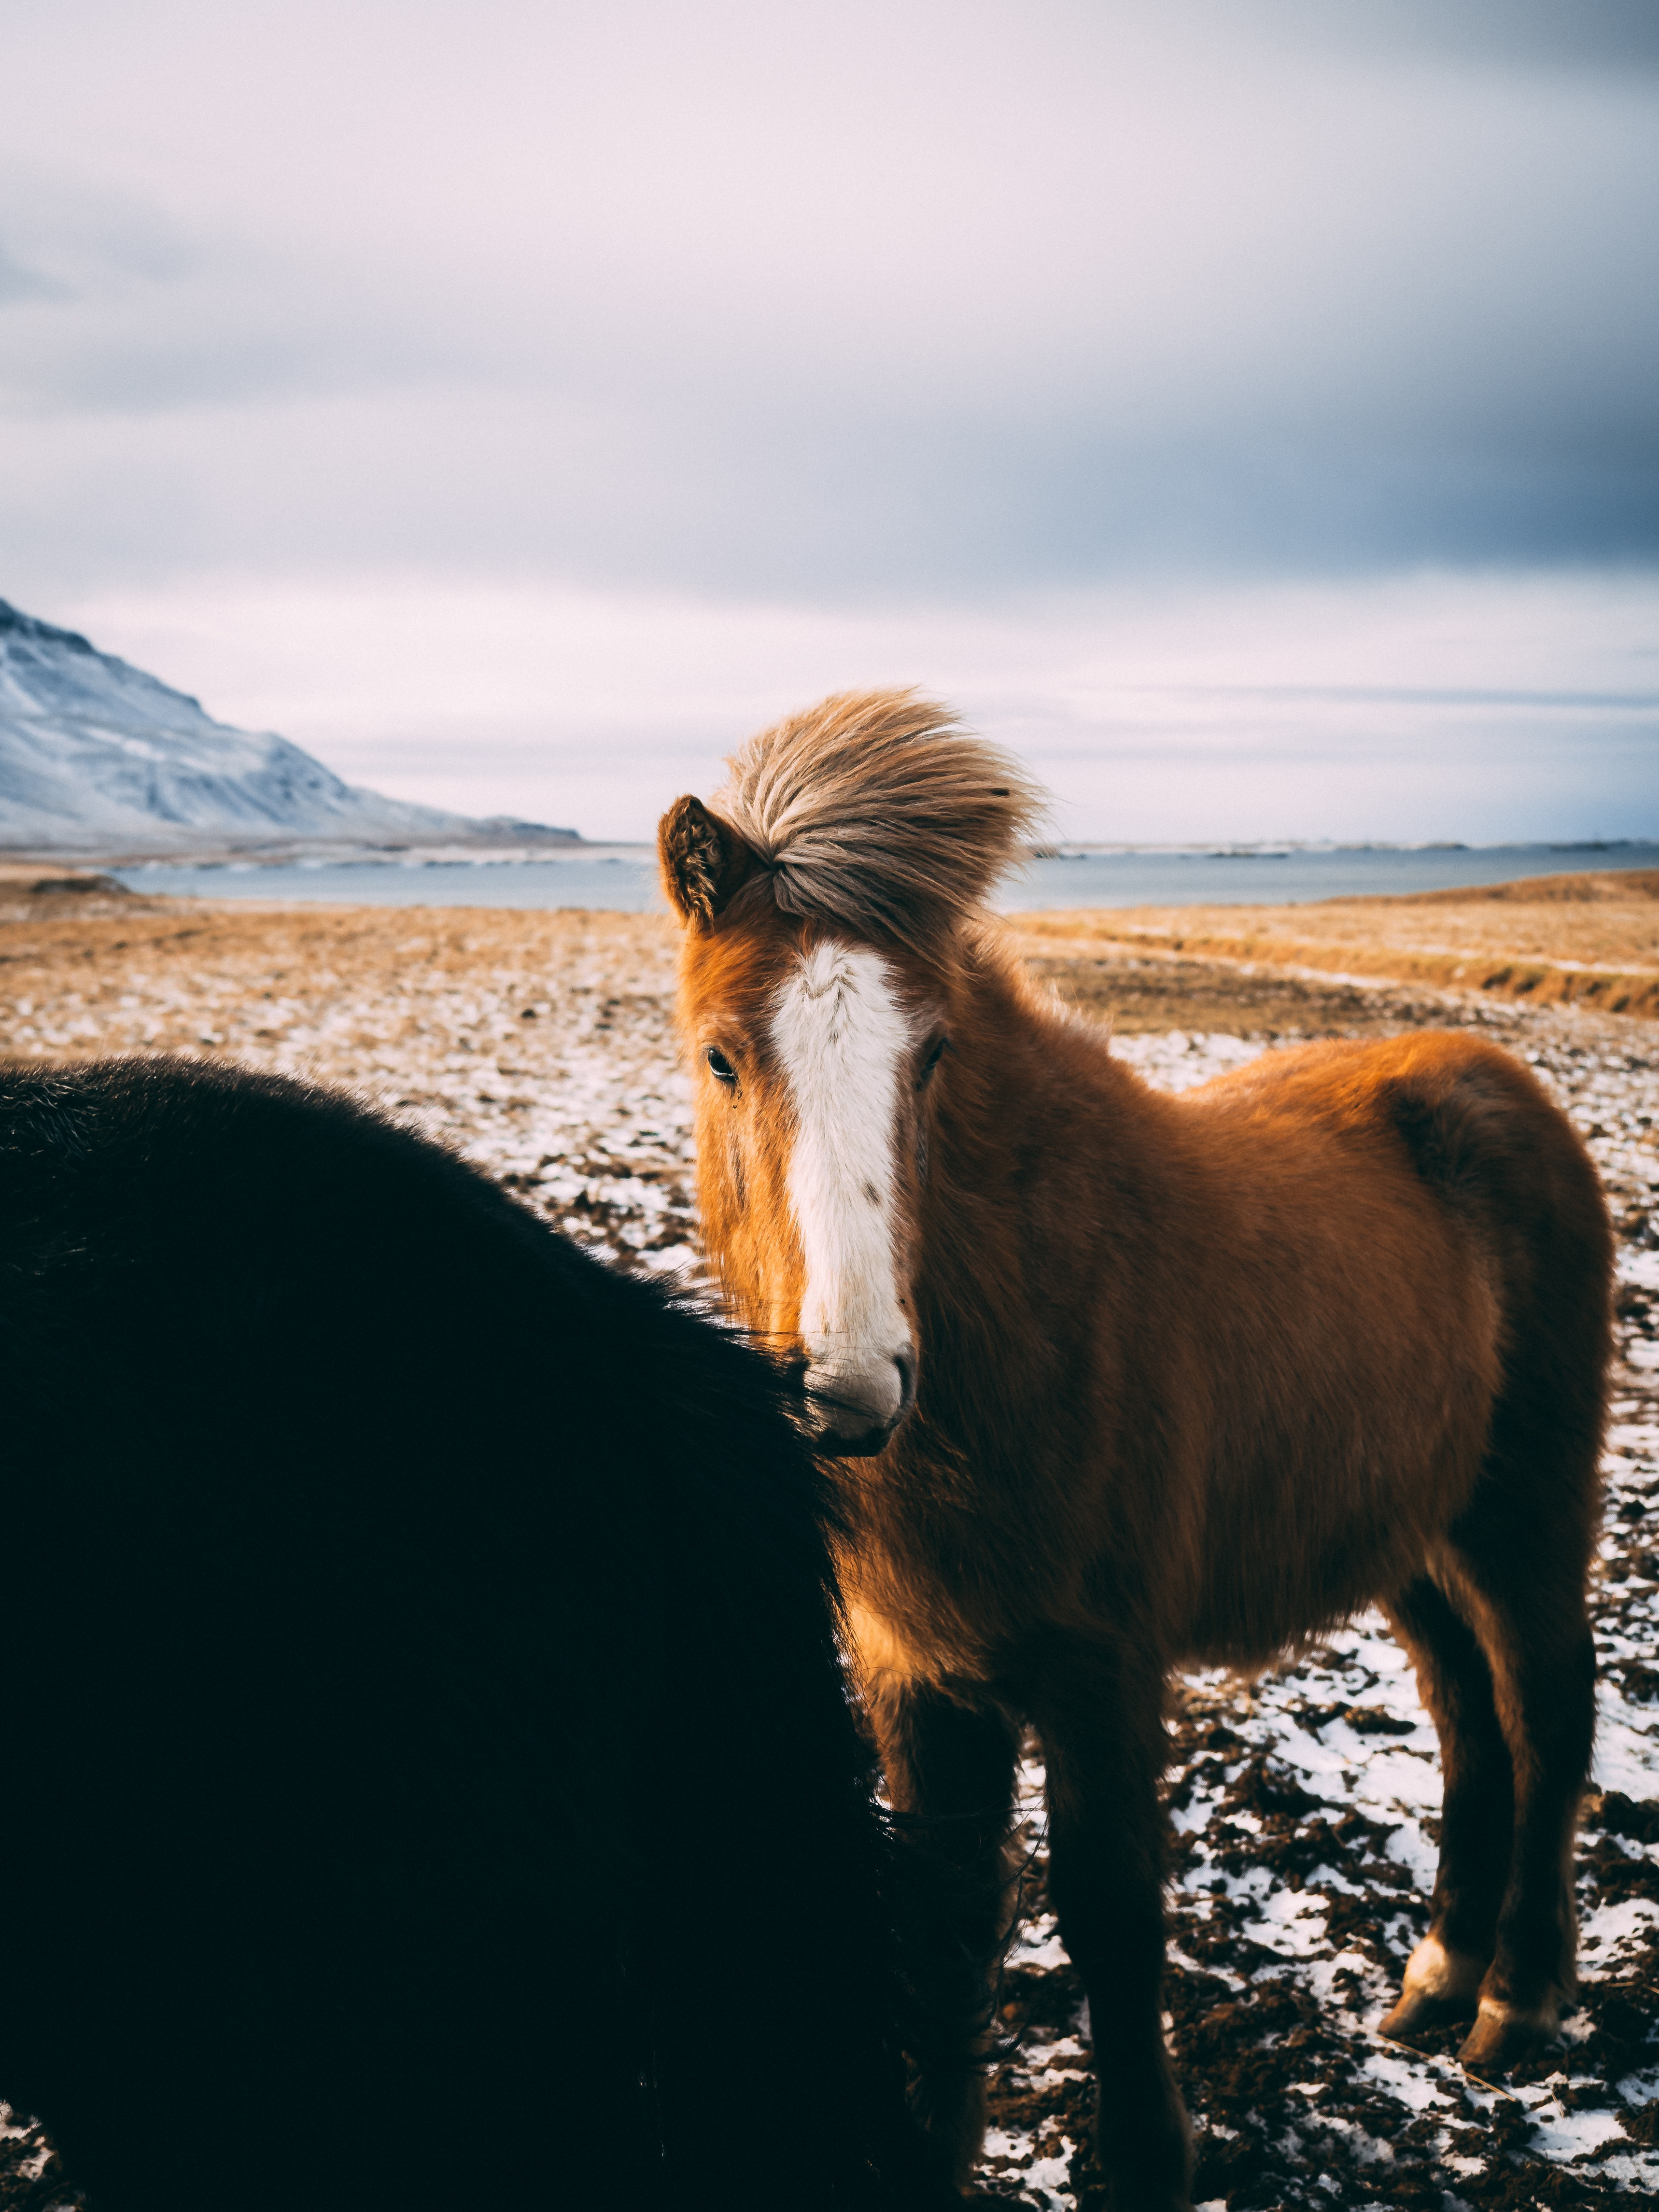 brown and white pony near body of water